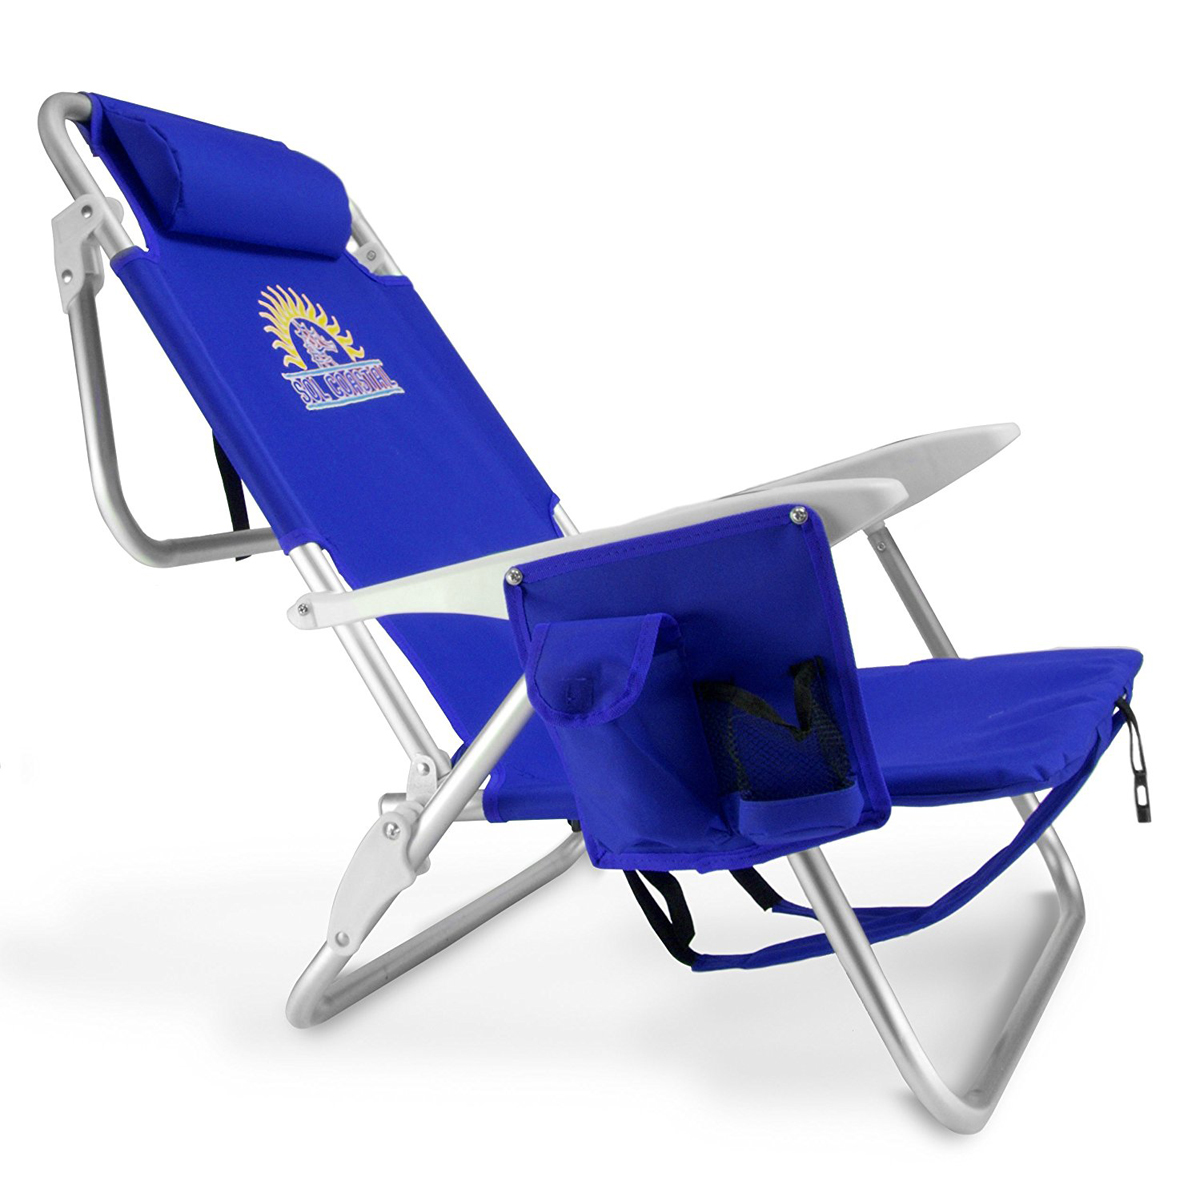 4-Position Folding Beach Chair, Blue